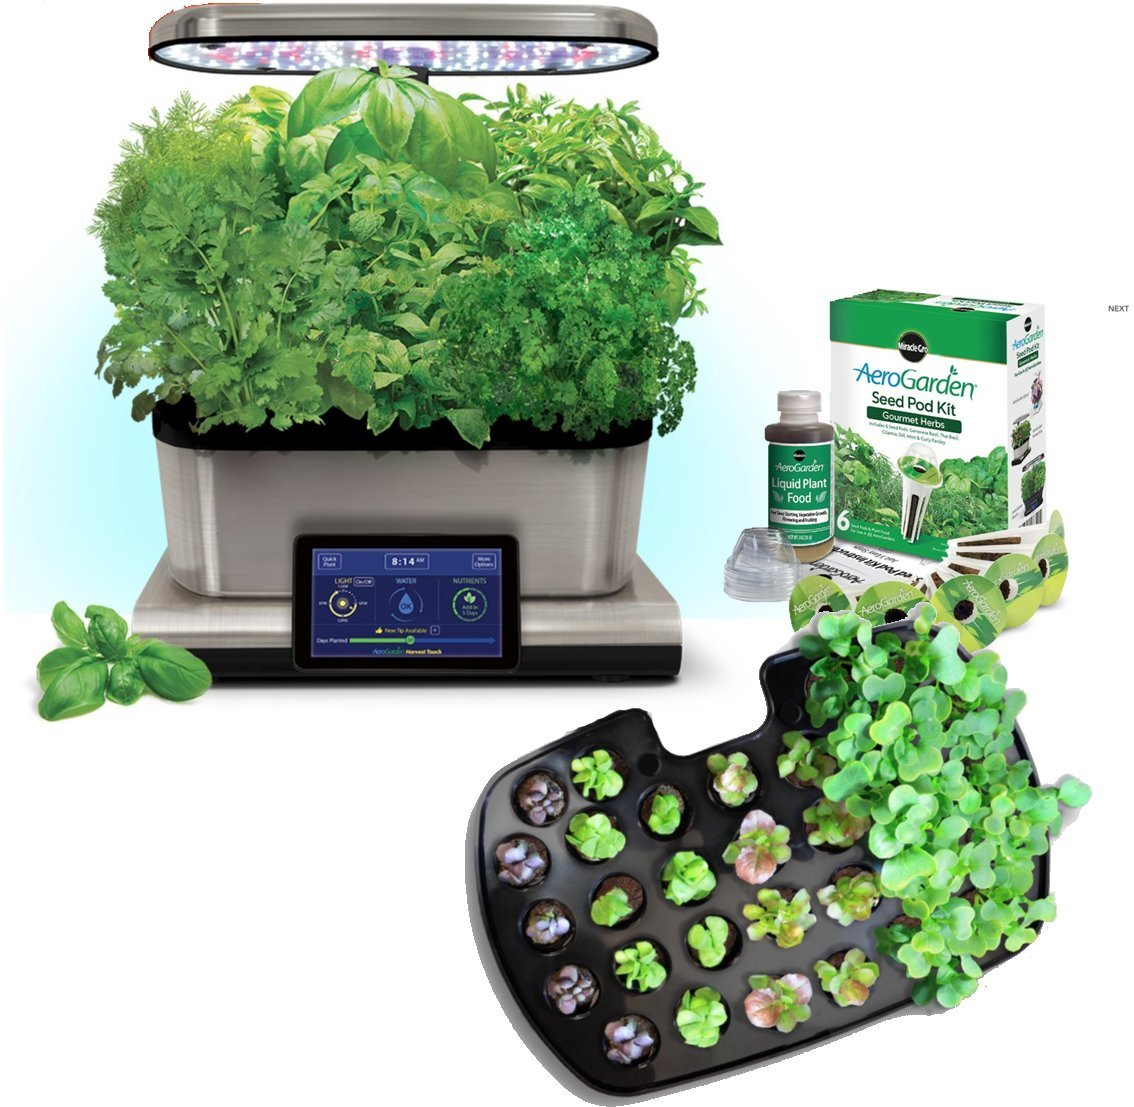 cheap aerogarden harvest touch 6 led stainless steel with. Black Bedroom Furniture Sets. Home Design Ideas